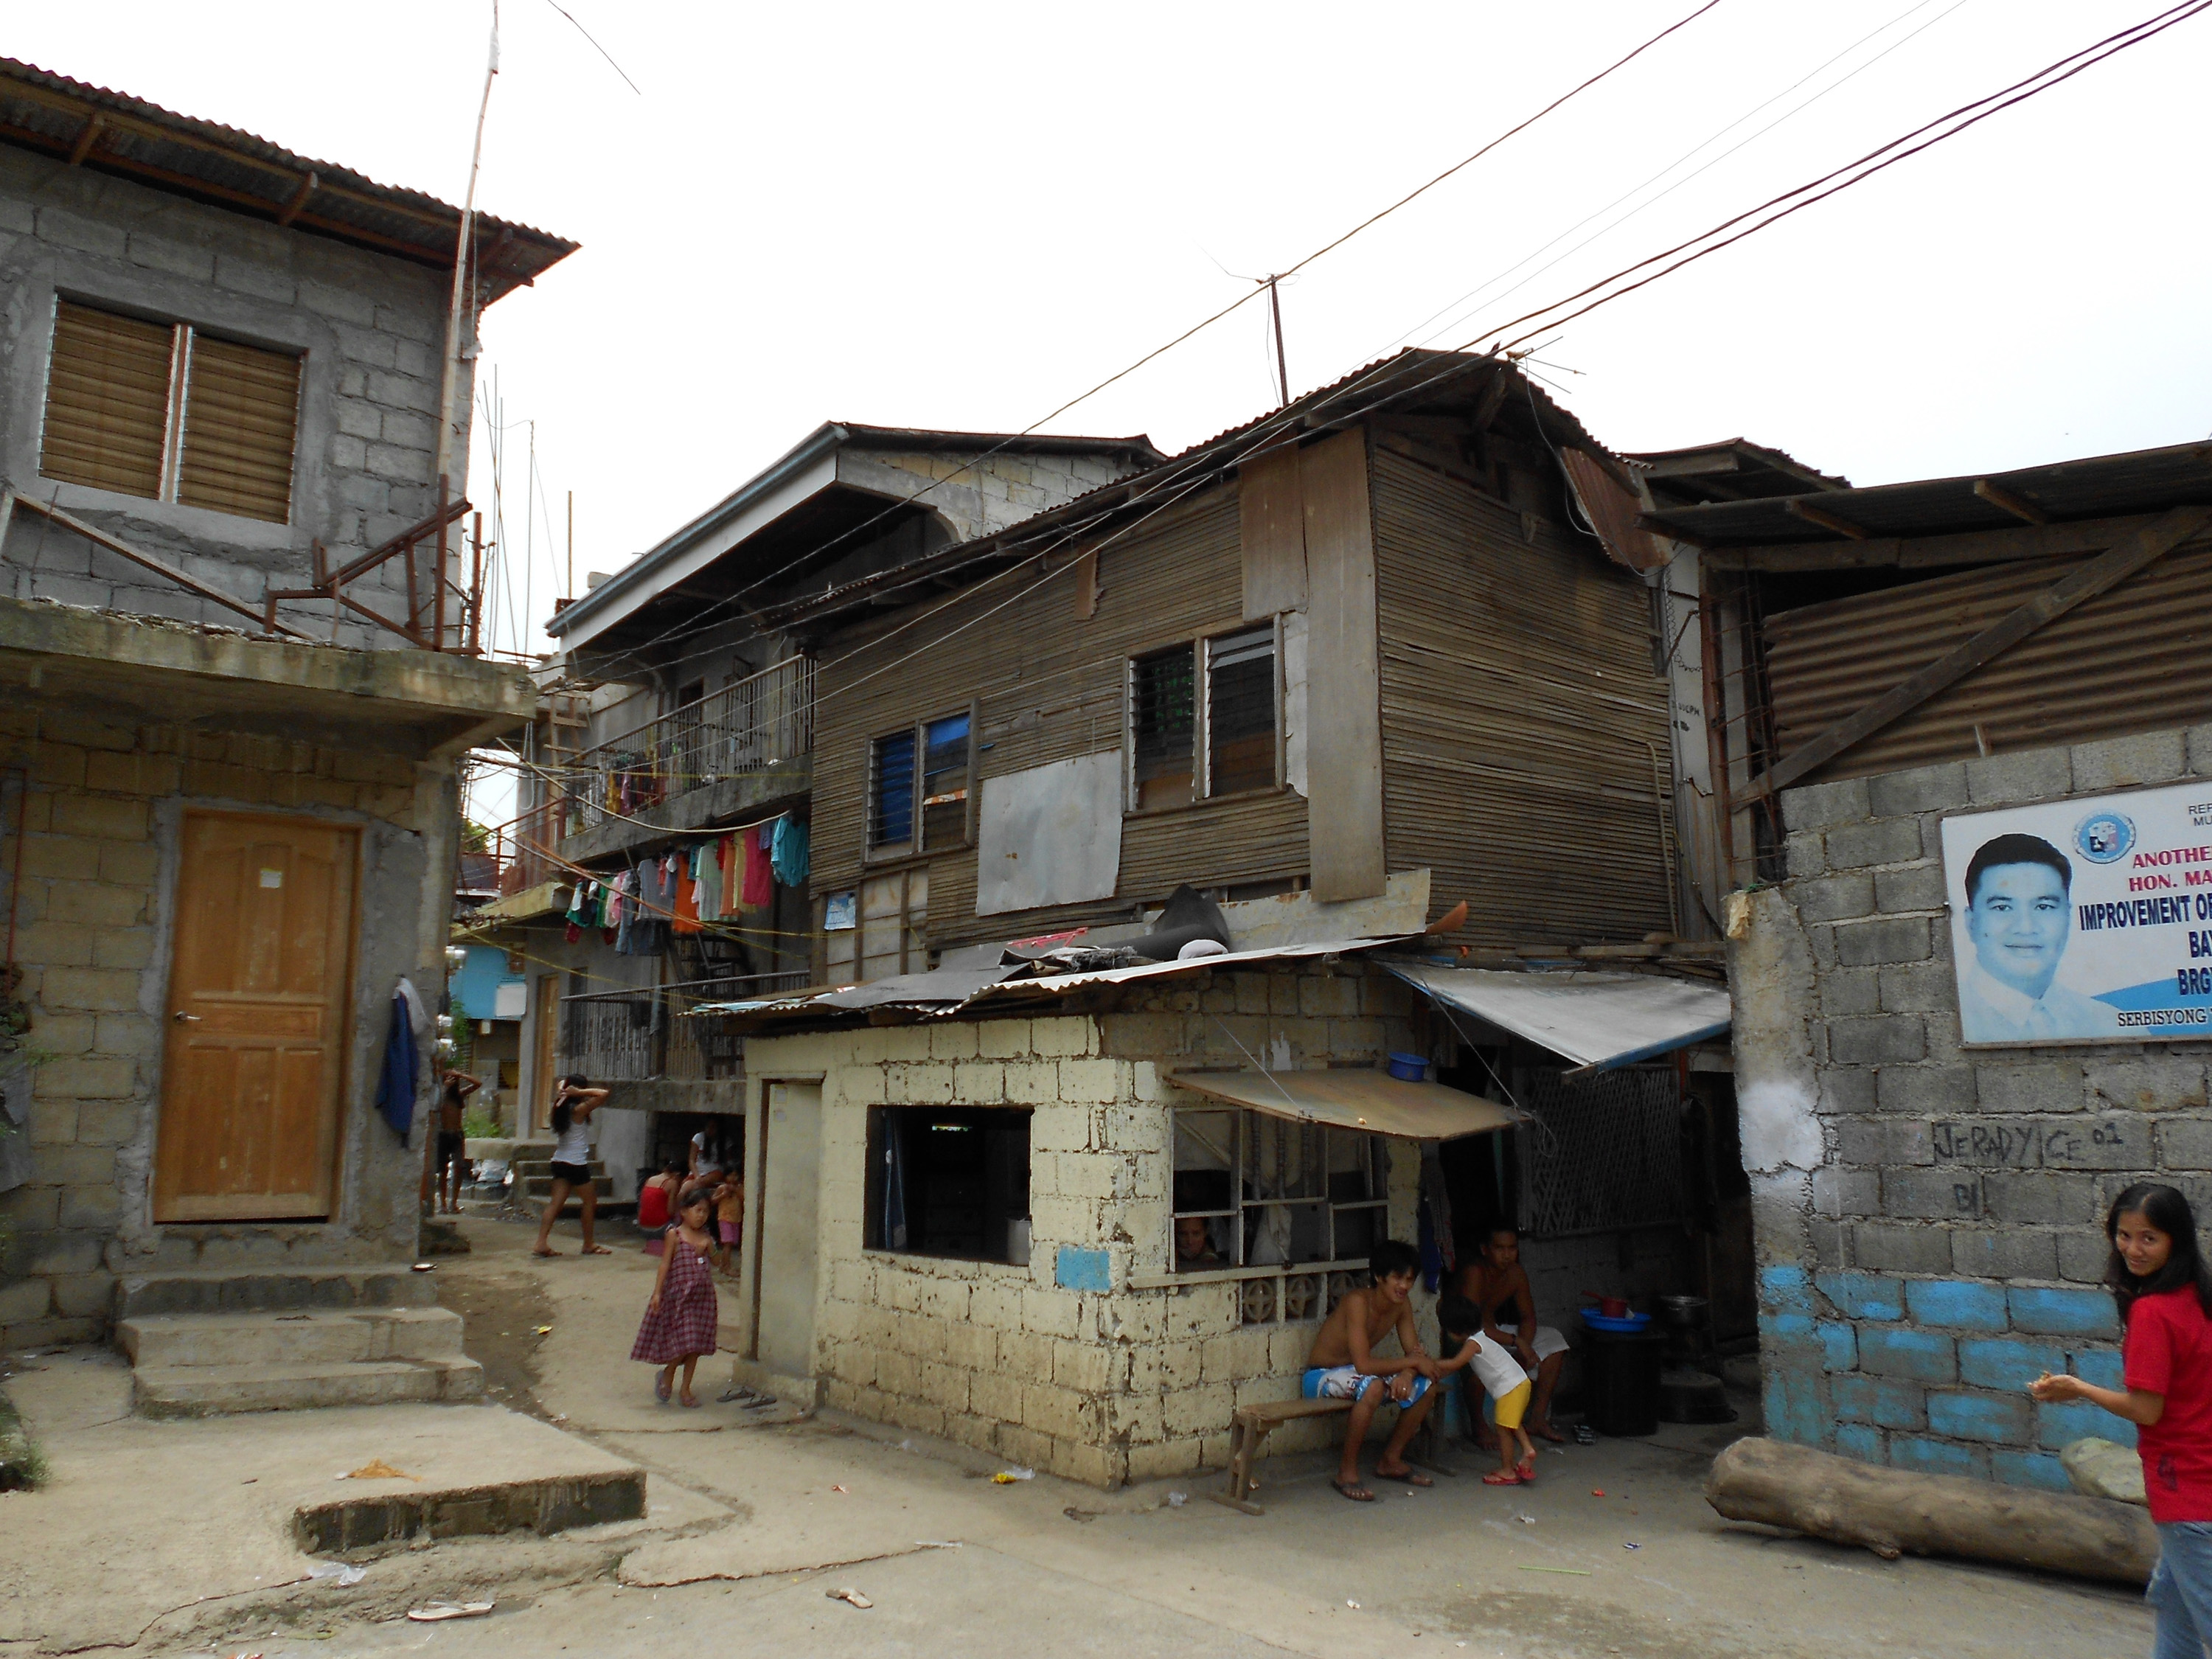 A neighborhood in the greater metropolitan Manila area threatened by severe flooding caused by typhoons and development. Image credit: Gavin Shatkin